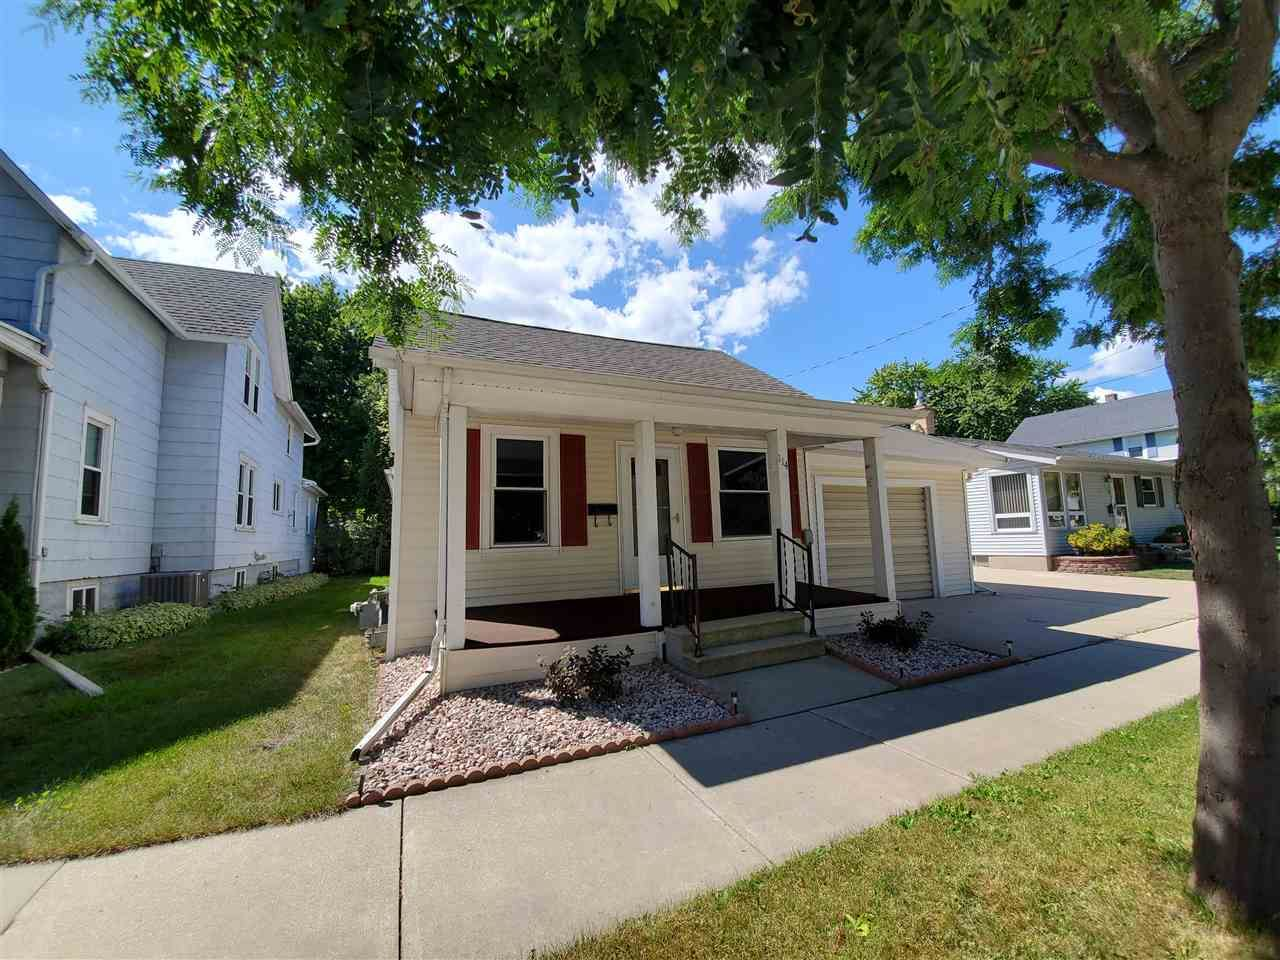 114 N LINCOLN AVE, Fond du Lac, WI 54935 - #: 370711